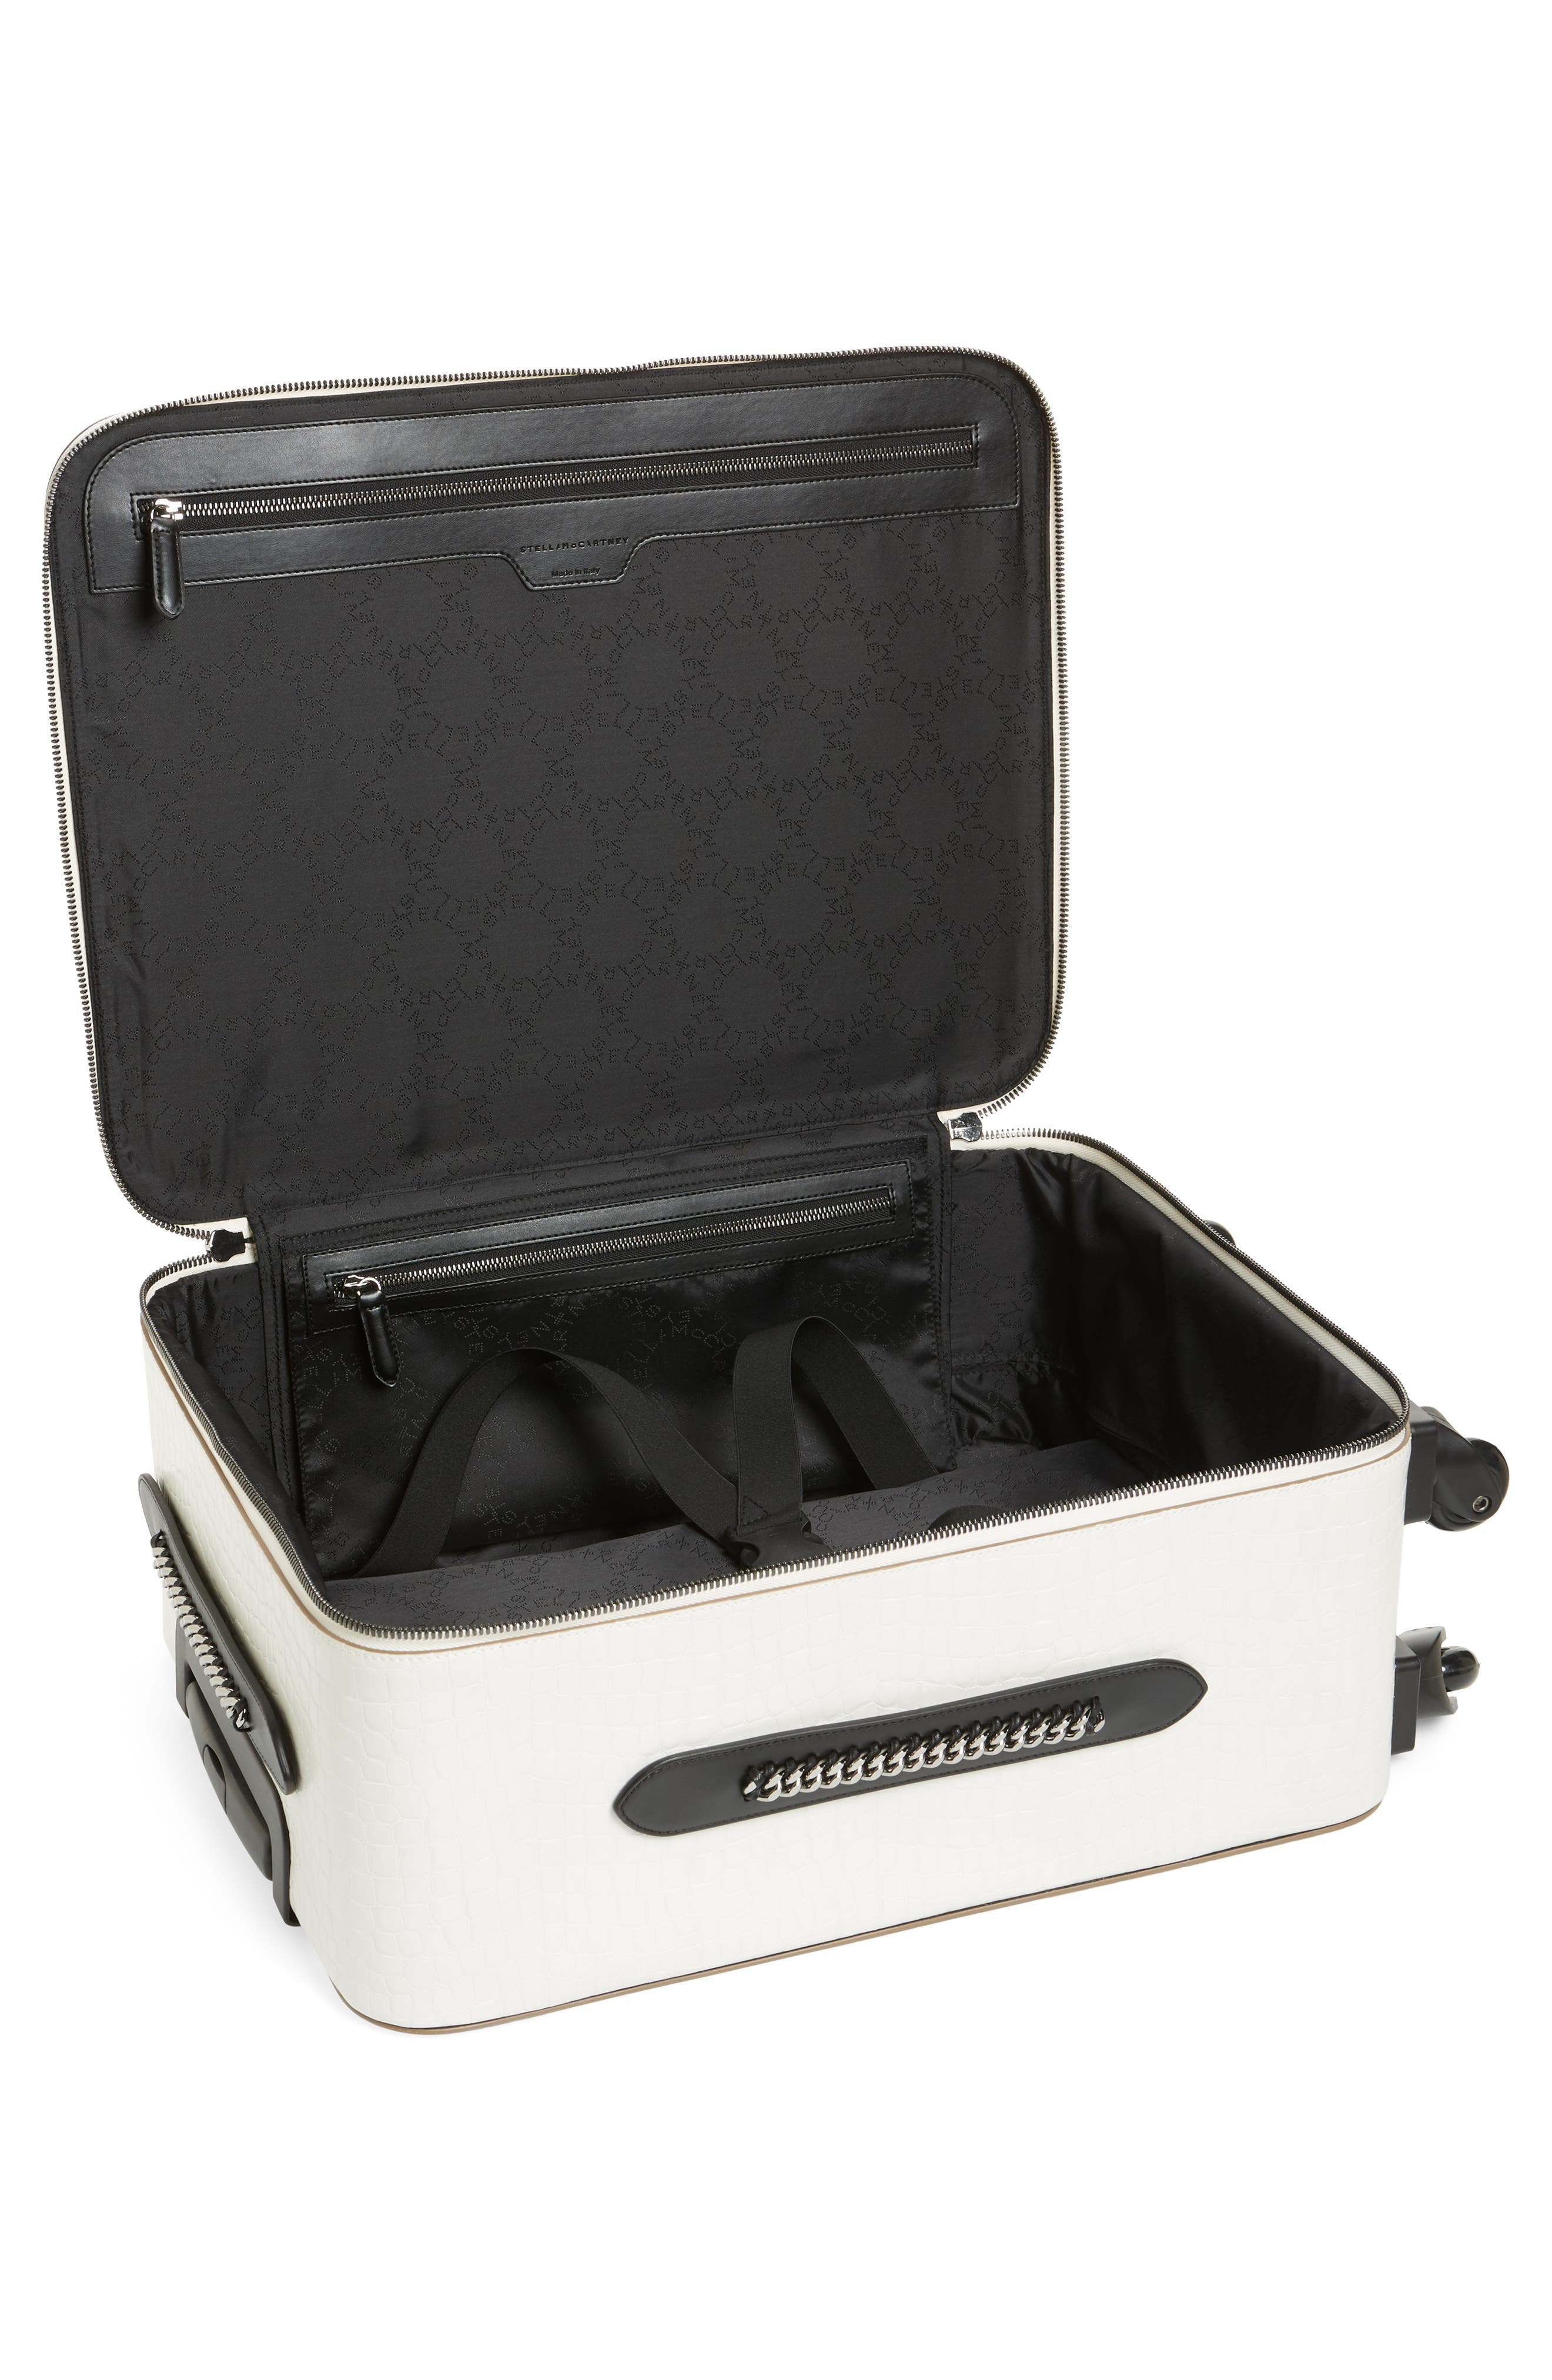 20-Inch Alter Croc Faux Leather Trolley Case,                             Alternate thumbnail 3, color,